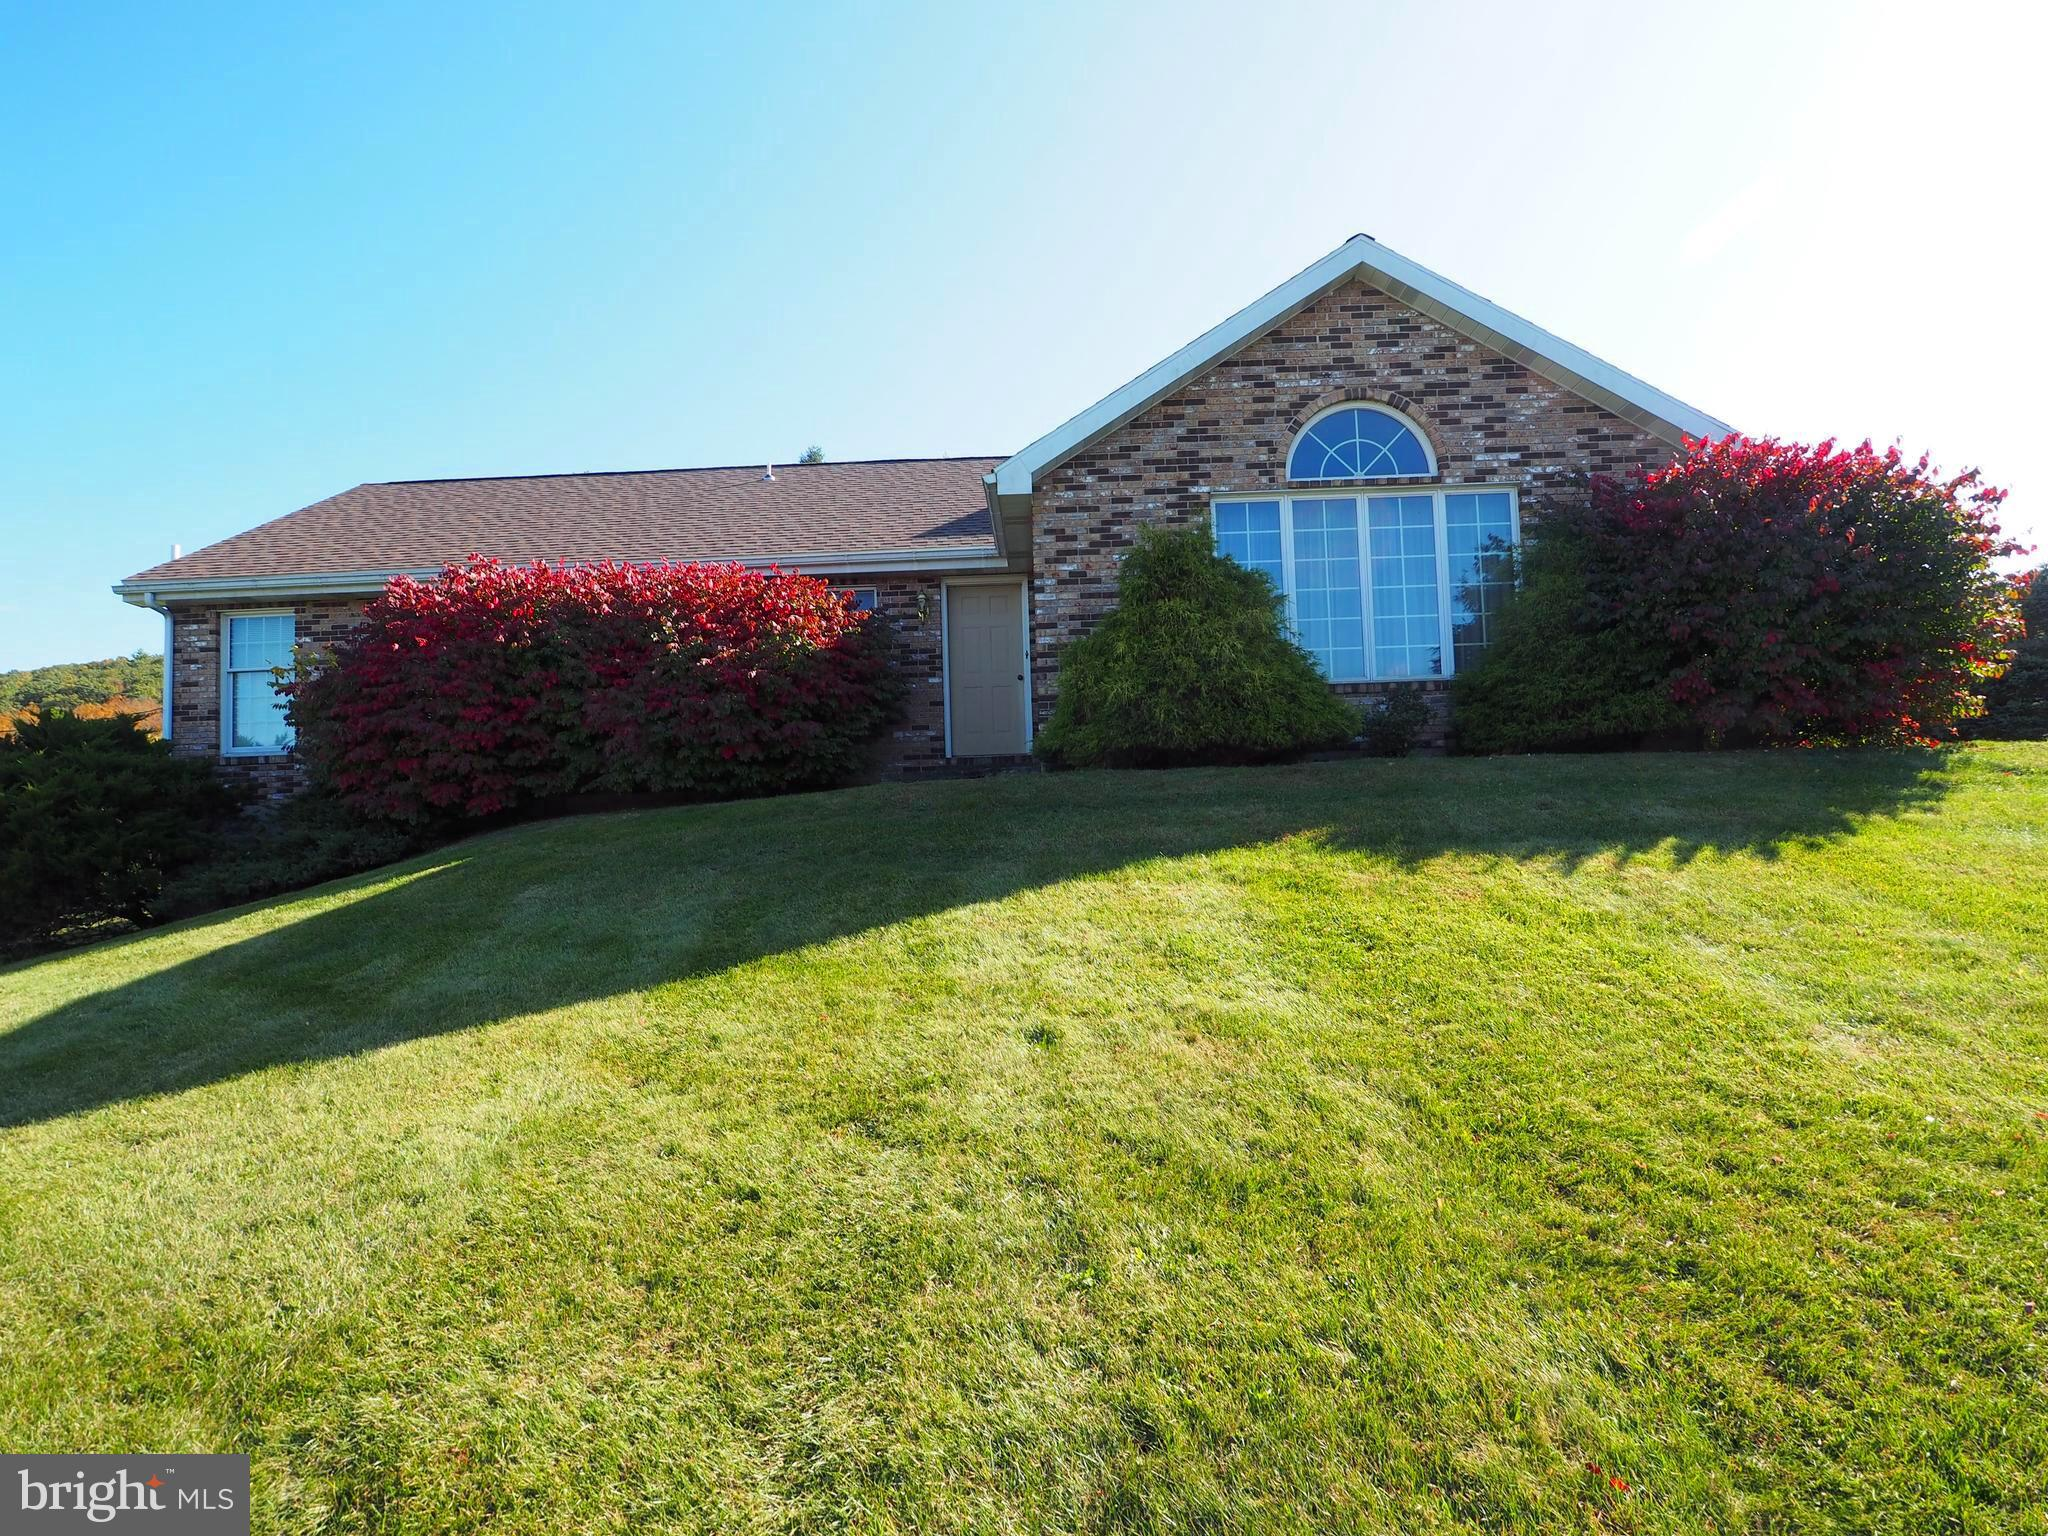 1009 SPRING ROAD, ANDREAS, PA 18211